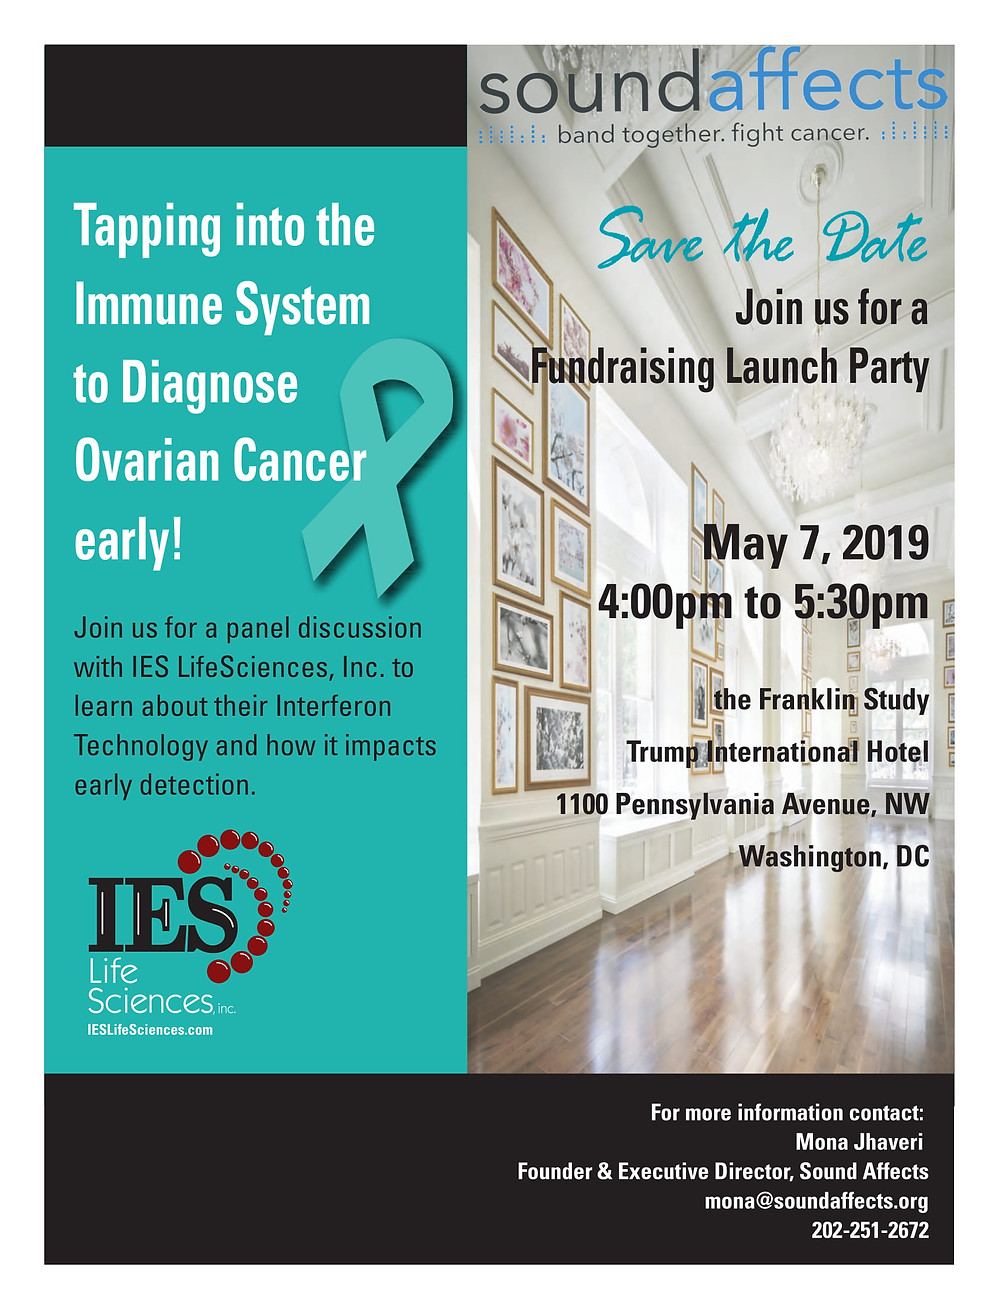 Save the date IES life sciences event